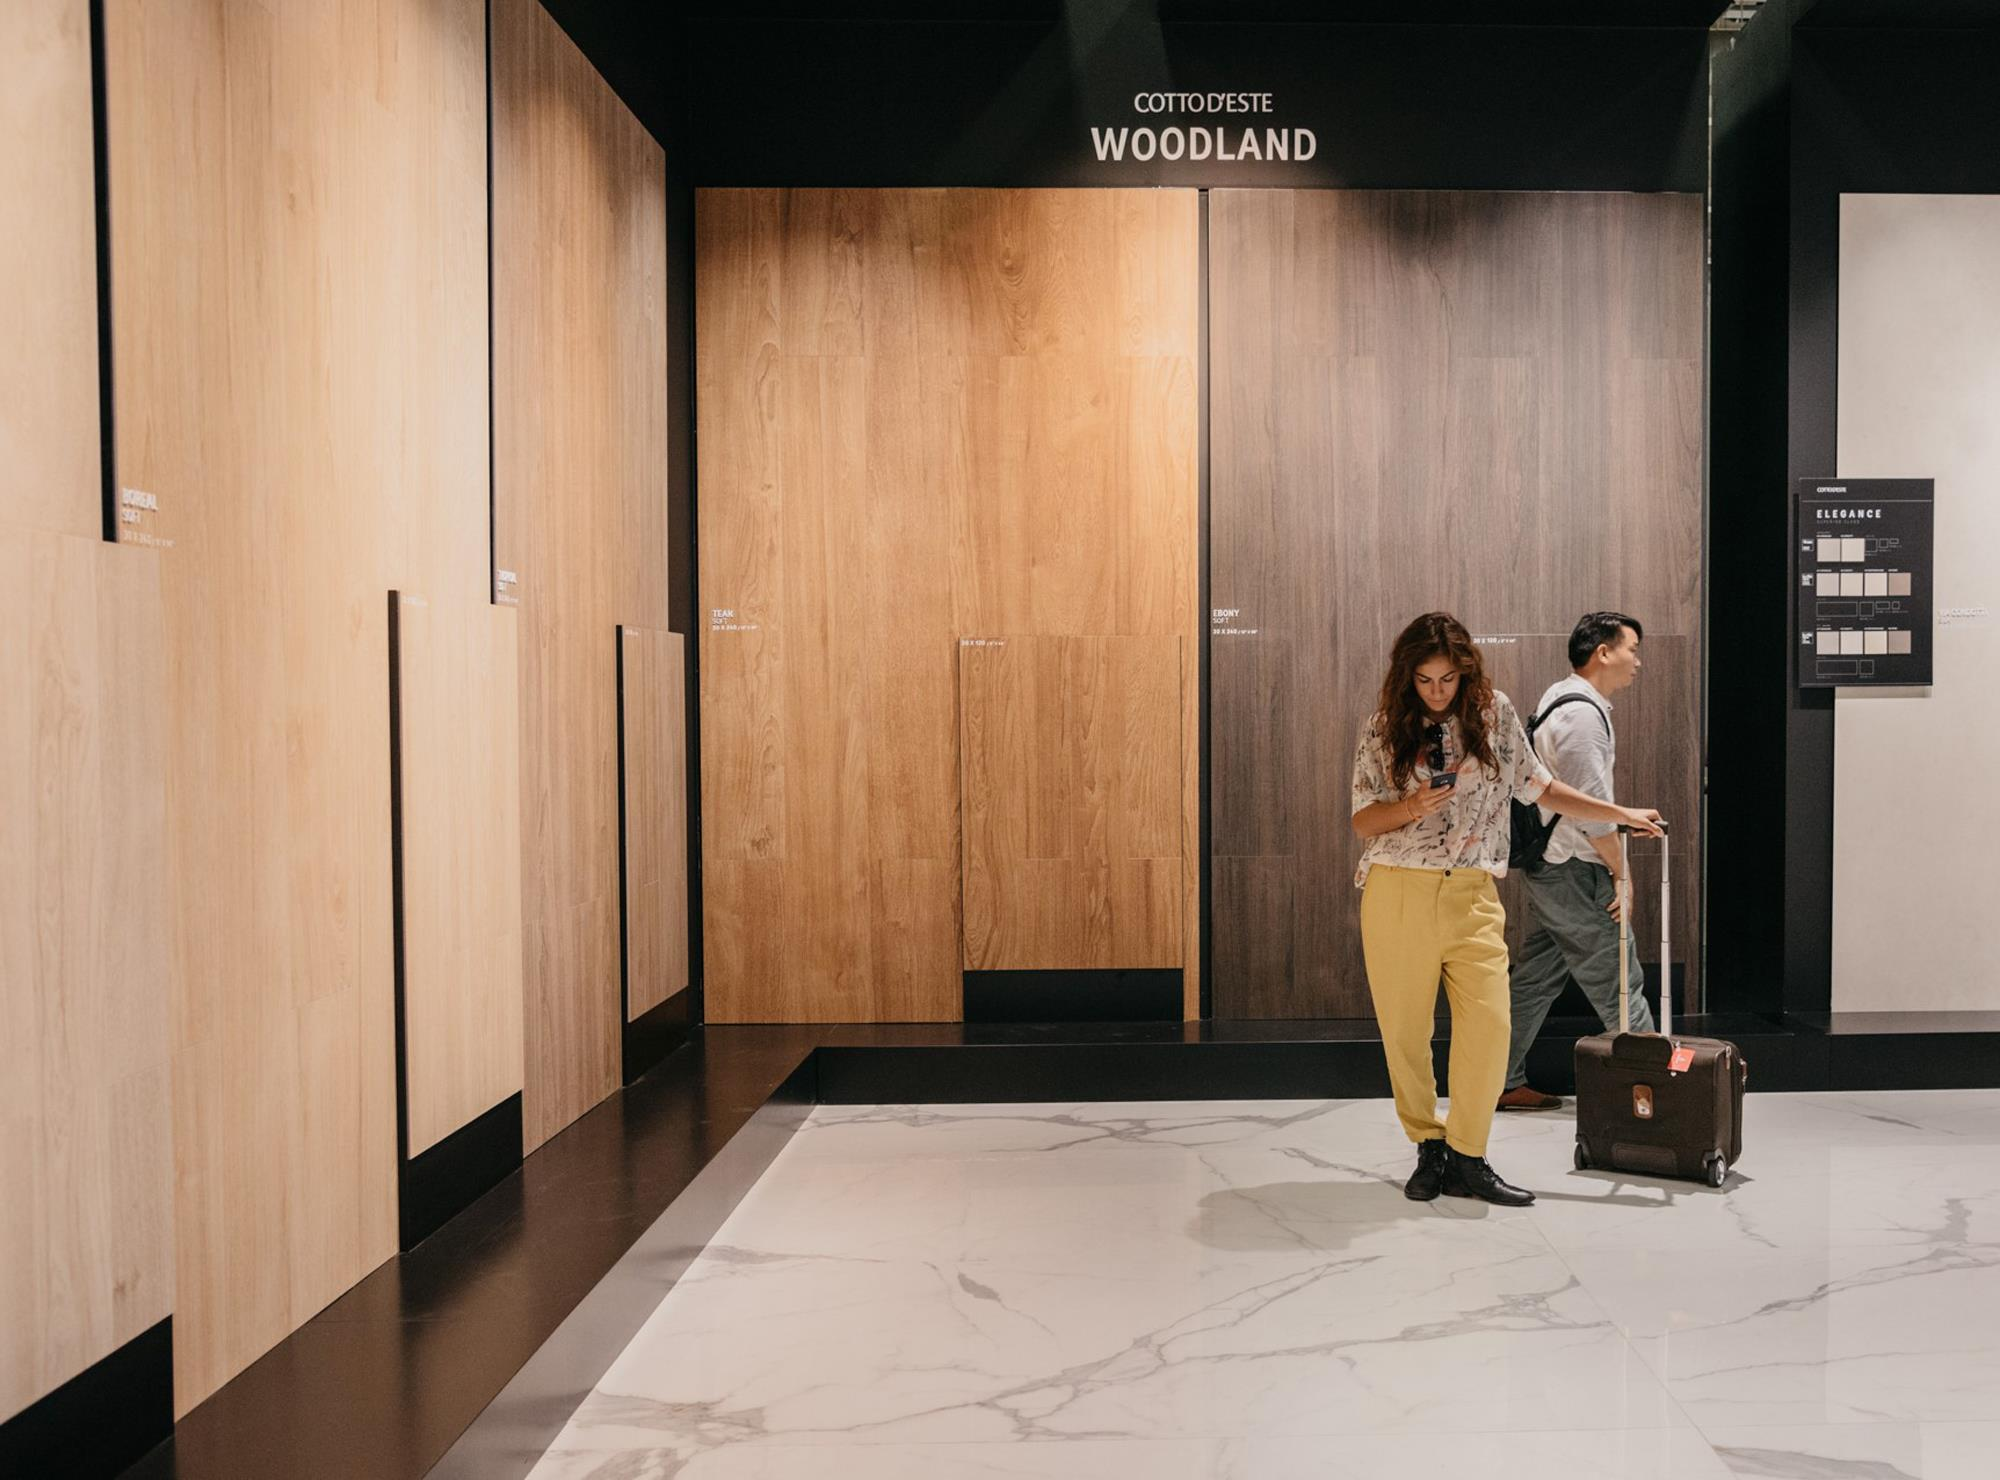 Cersaie 2018, Cotto d'Este takes ceramics to a new level: Photo 41